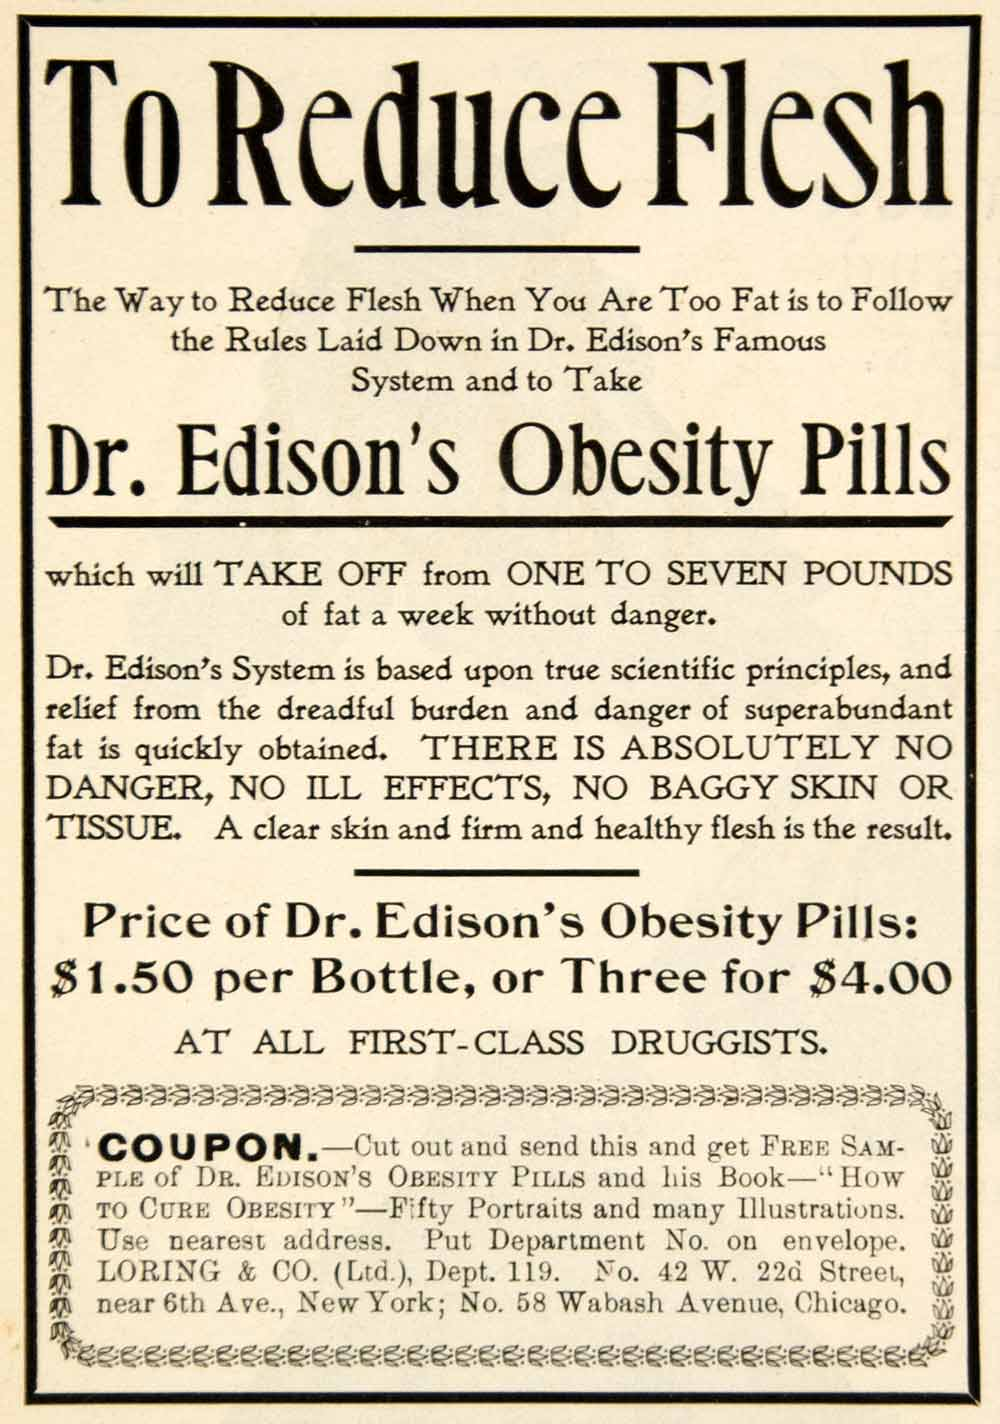 1898 Ad Doctor Edison Obesity Pills Reduce Flesh Weight Loss Health Beauty YDL1